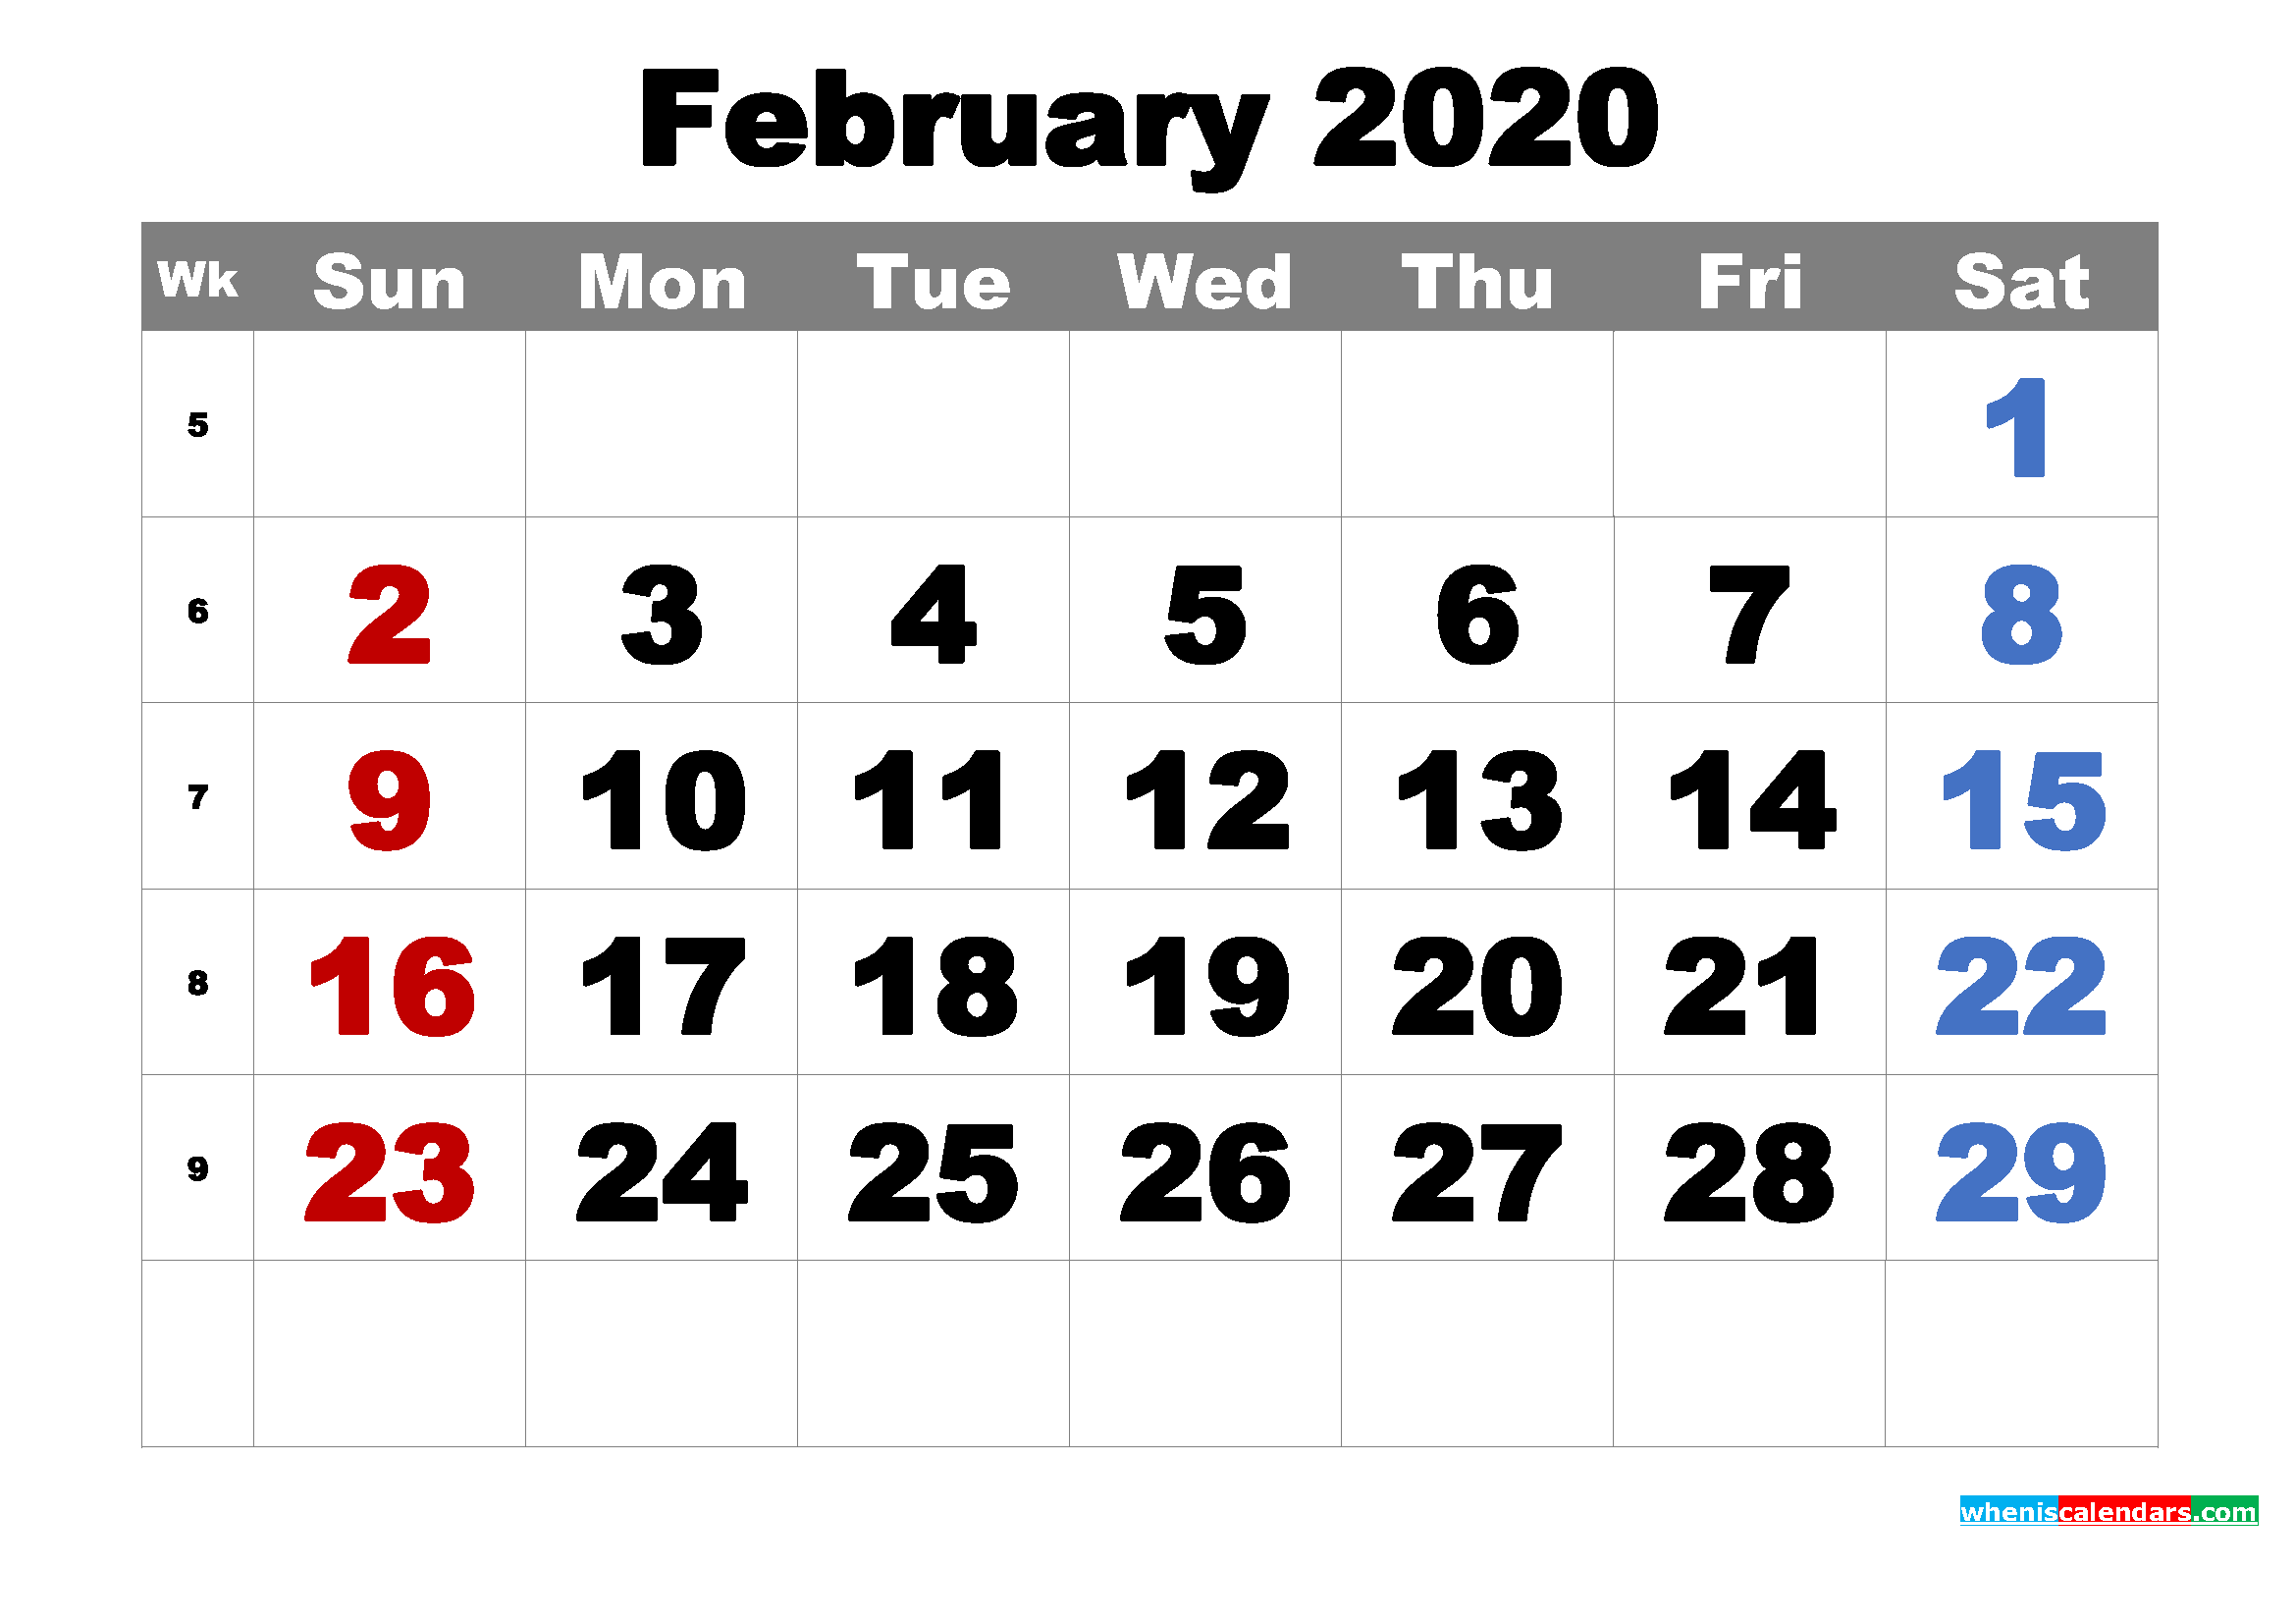 Free Printable February 2020 Calendar Word, PDF, Image